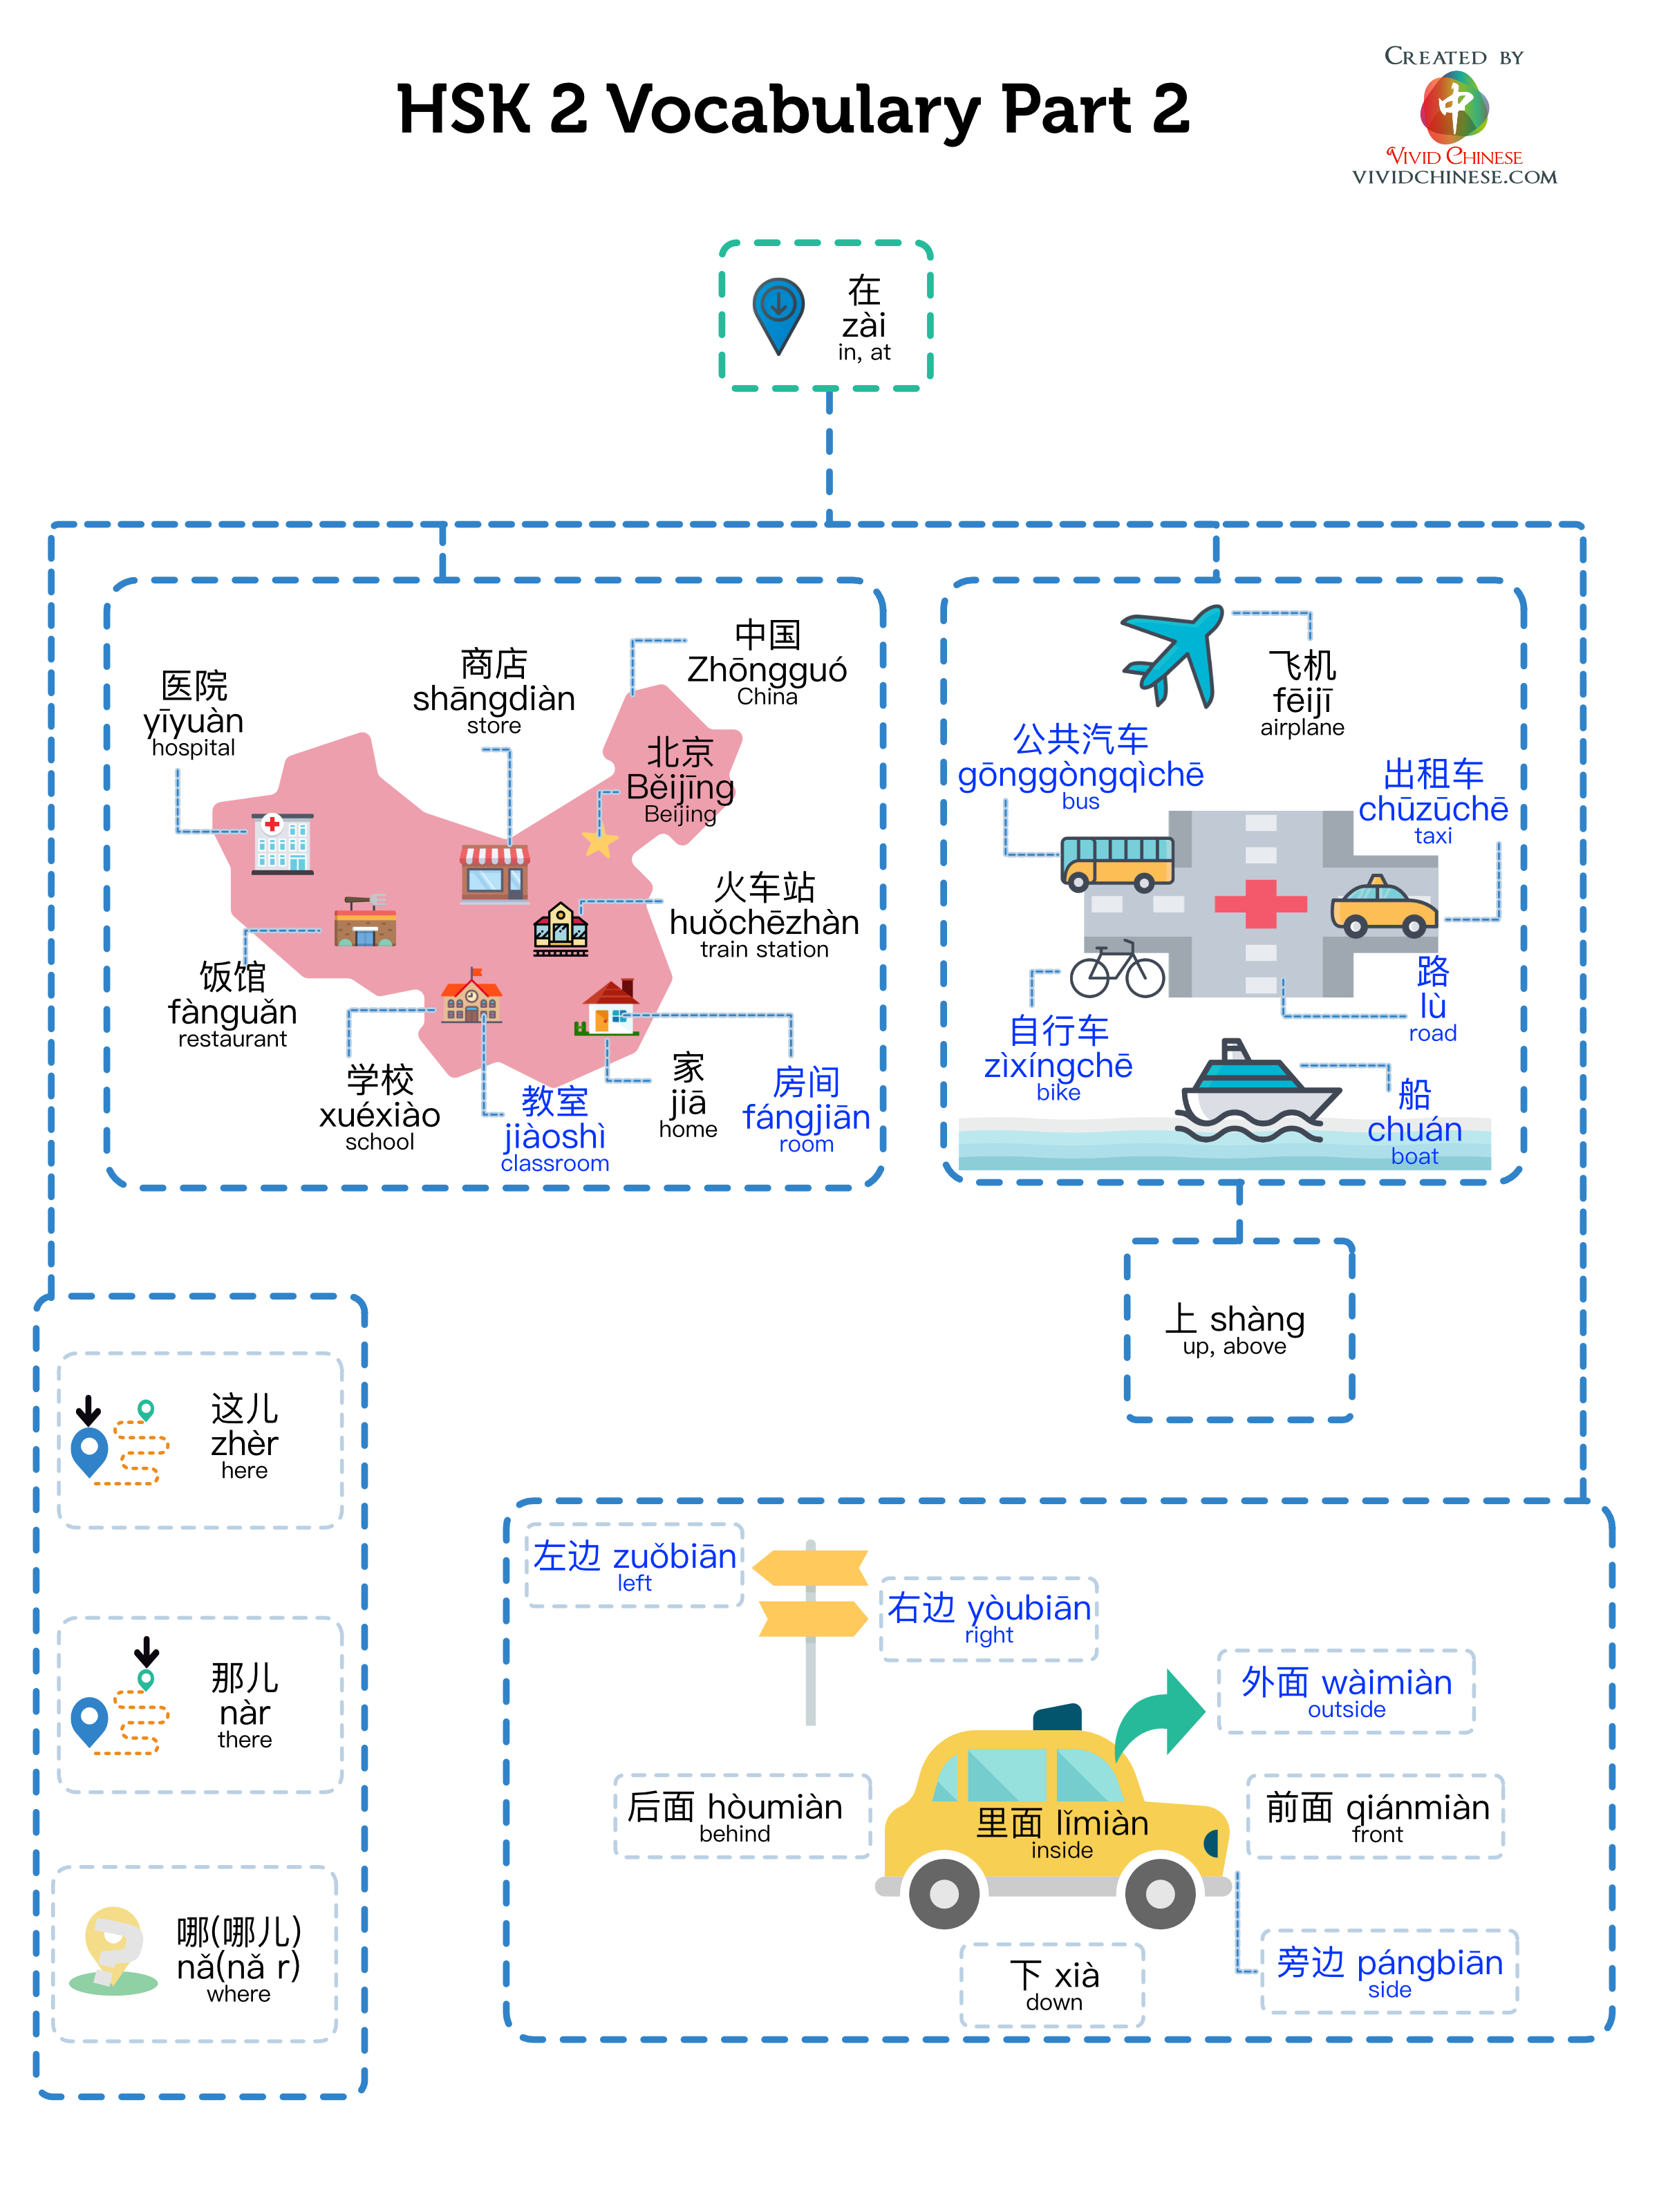 HSK 2 Vocabulary (Part 2) Infographic